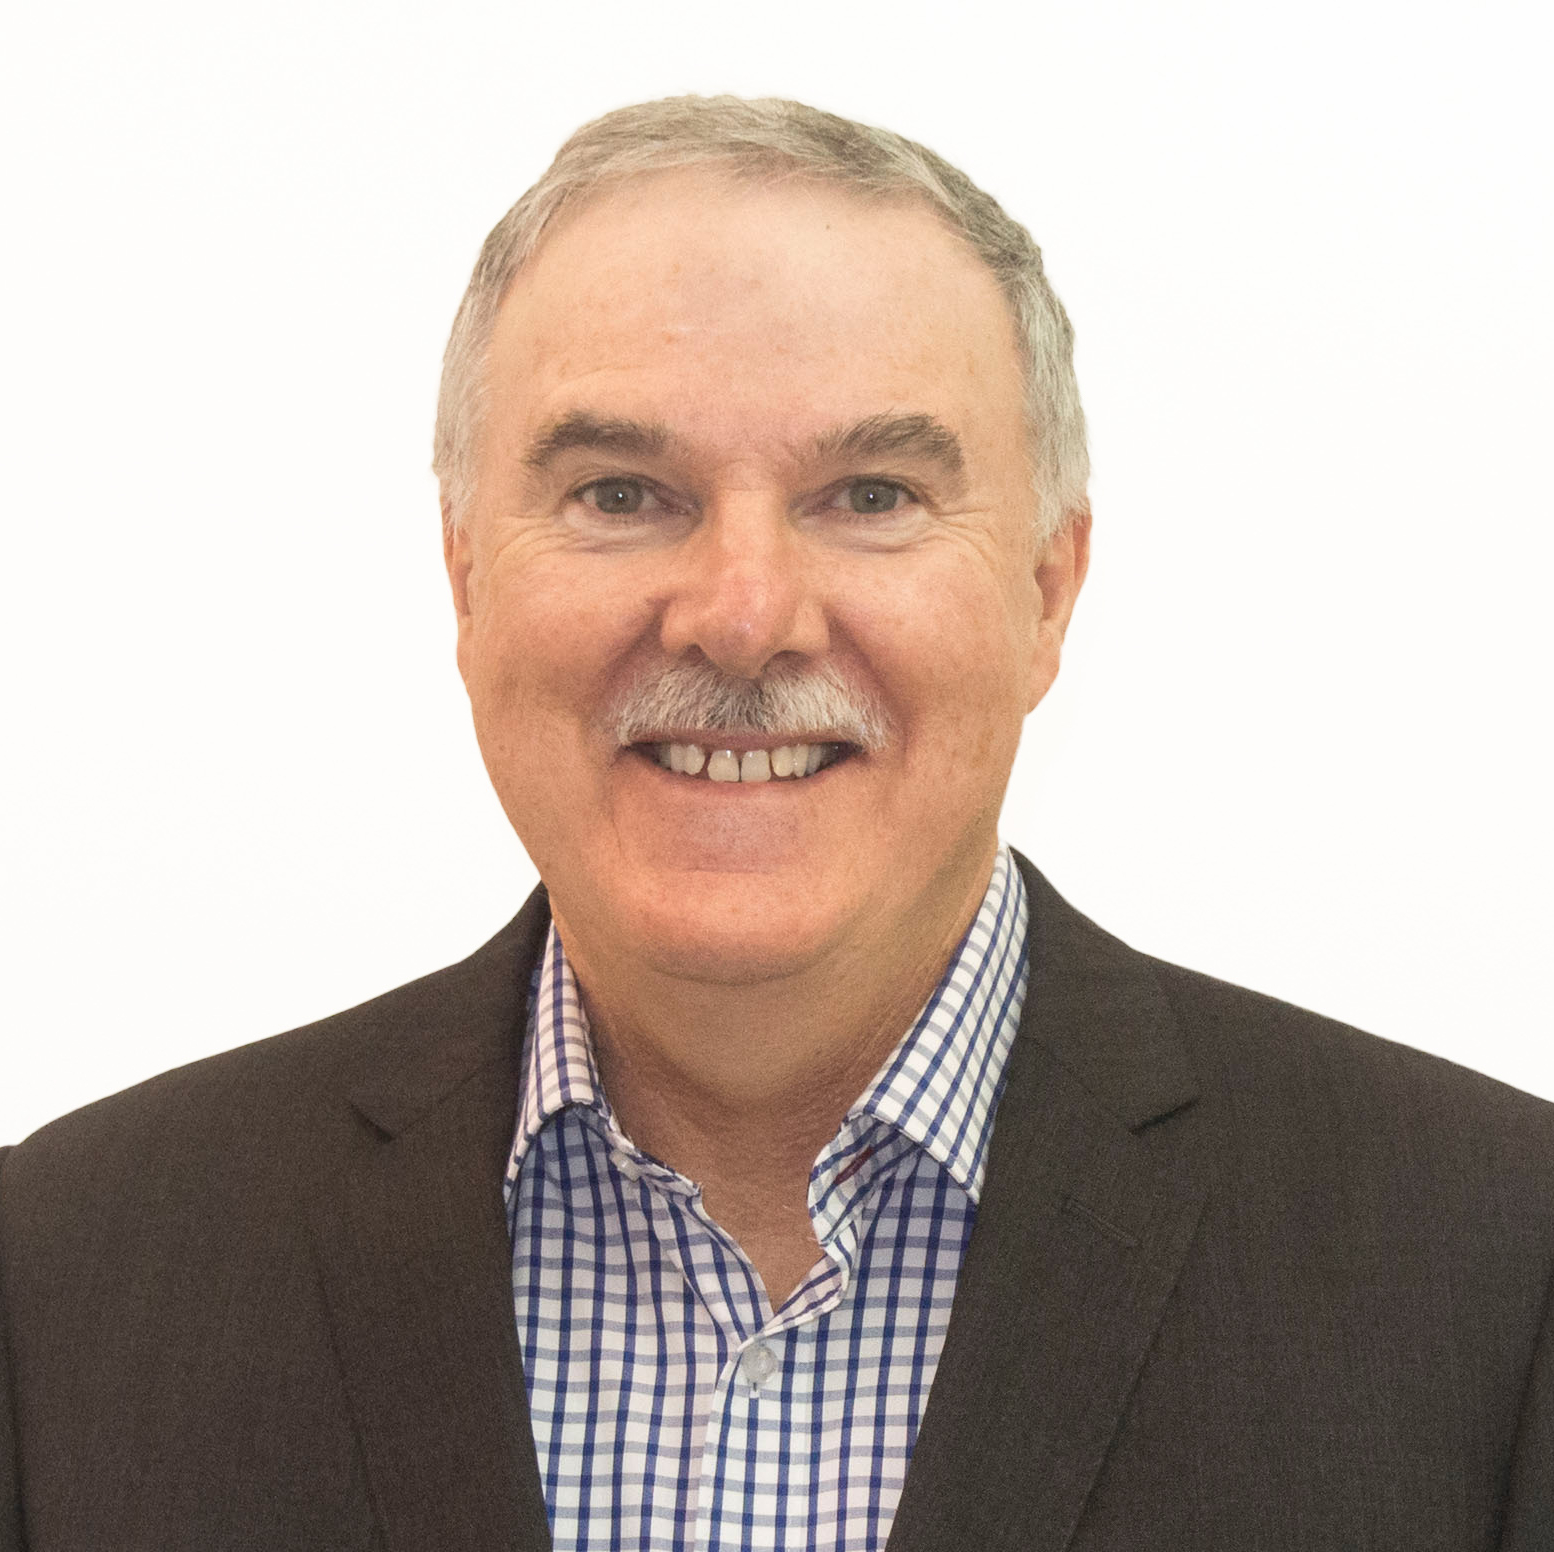 PETER WILSON   As CEO, Peter sees the complex financial world through a wide lens creating opportunities for individuals to prosper and thrive.